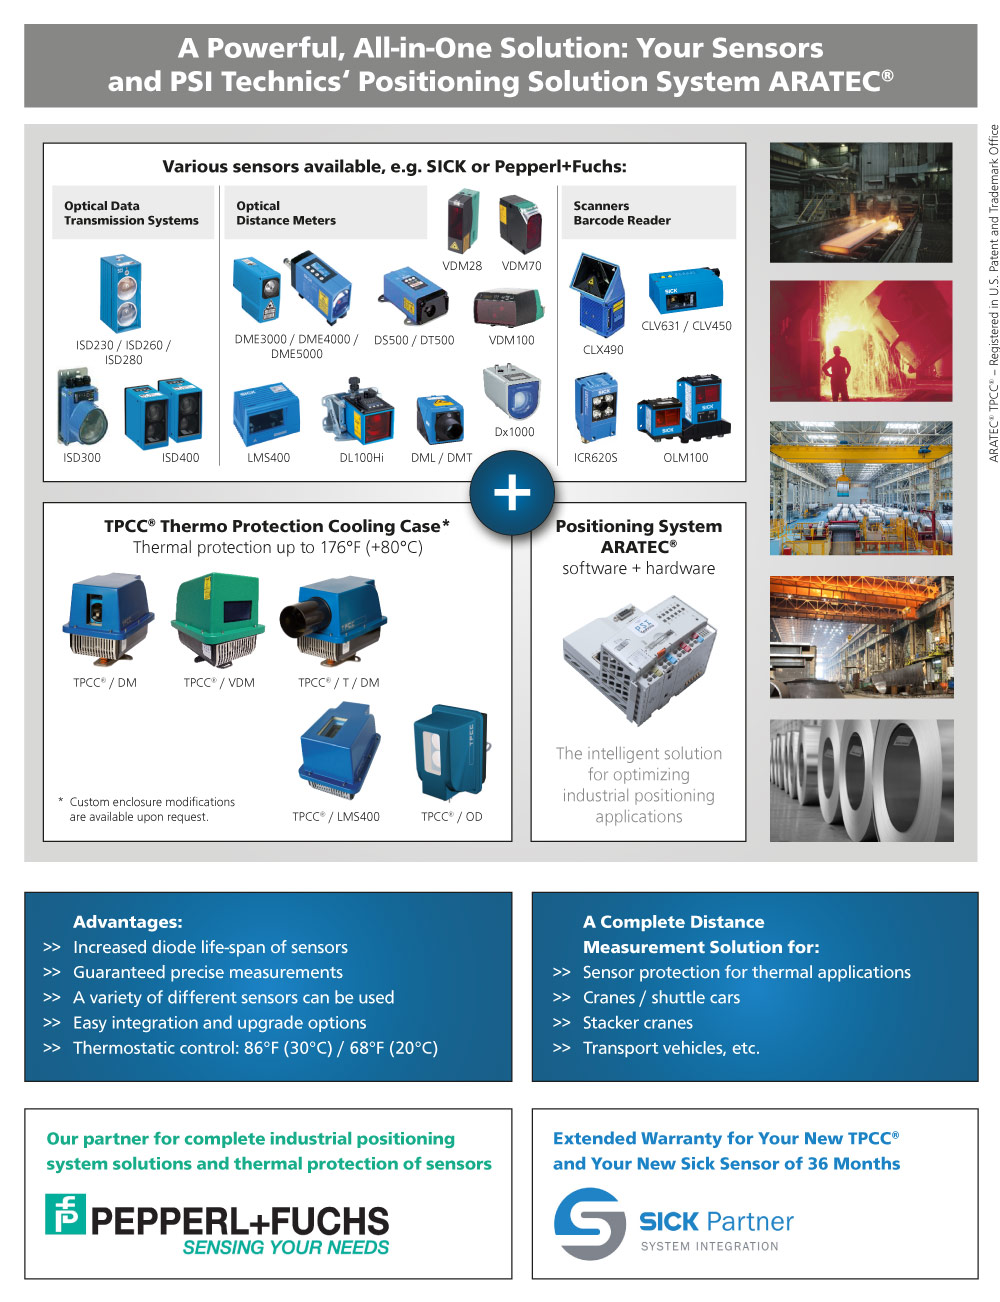 A powerful, all-in-one solution - your sensors and PSI Technics' Positioning Solution System